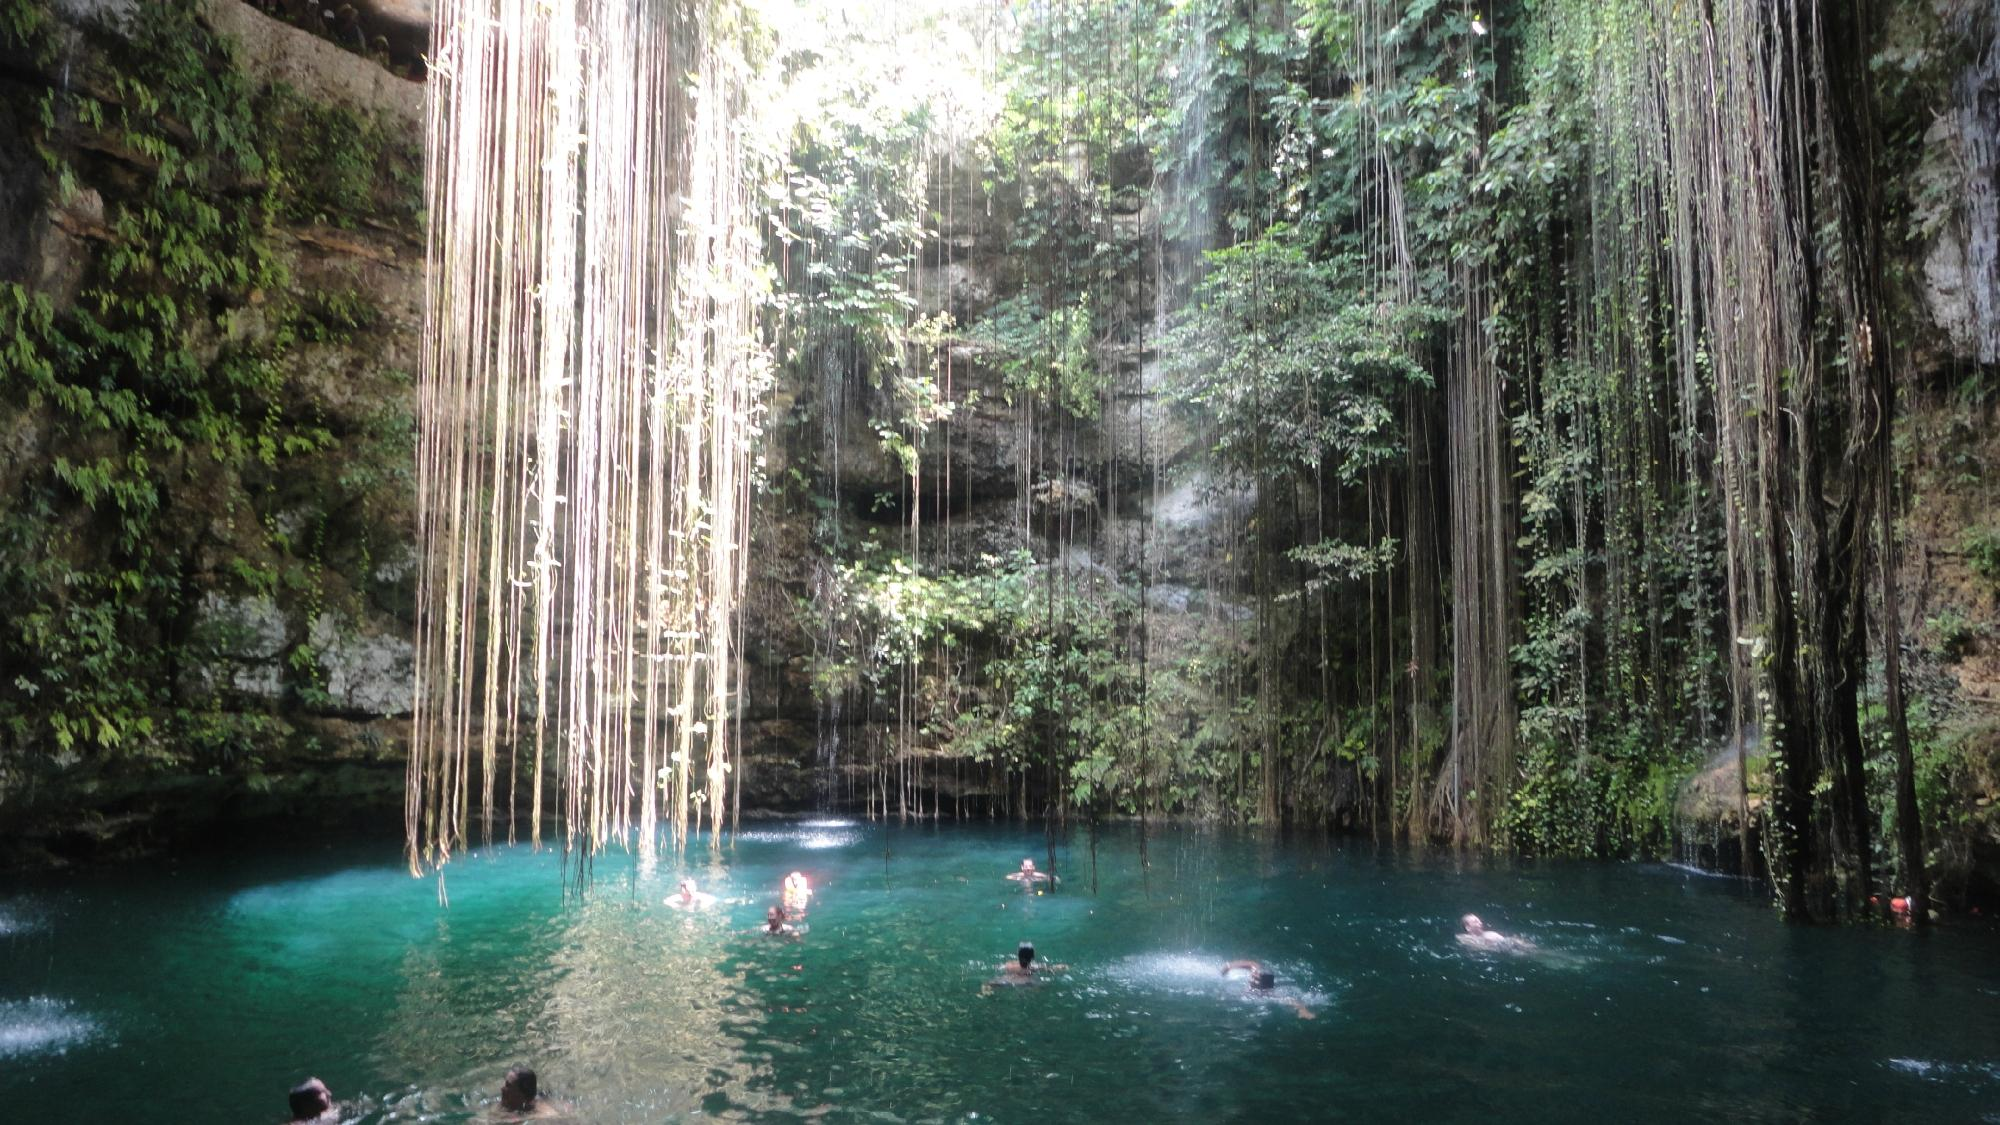 Beautiful waterfall in thailand s erawan waterfalls national park - Best Natural Swimming Holes In The World